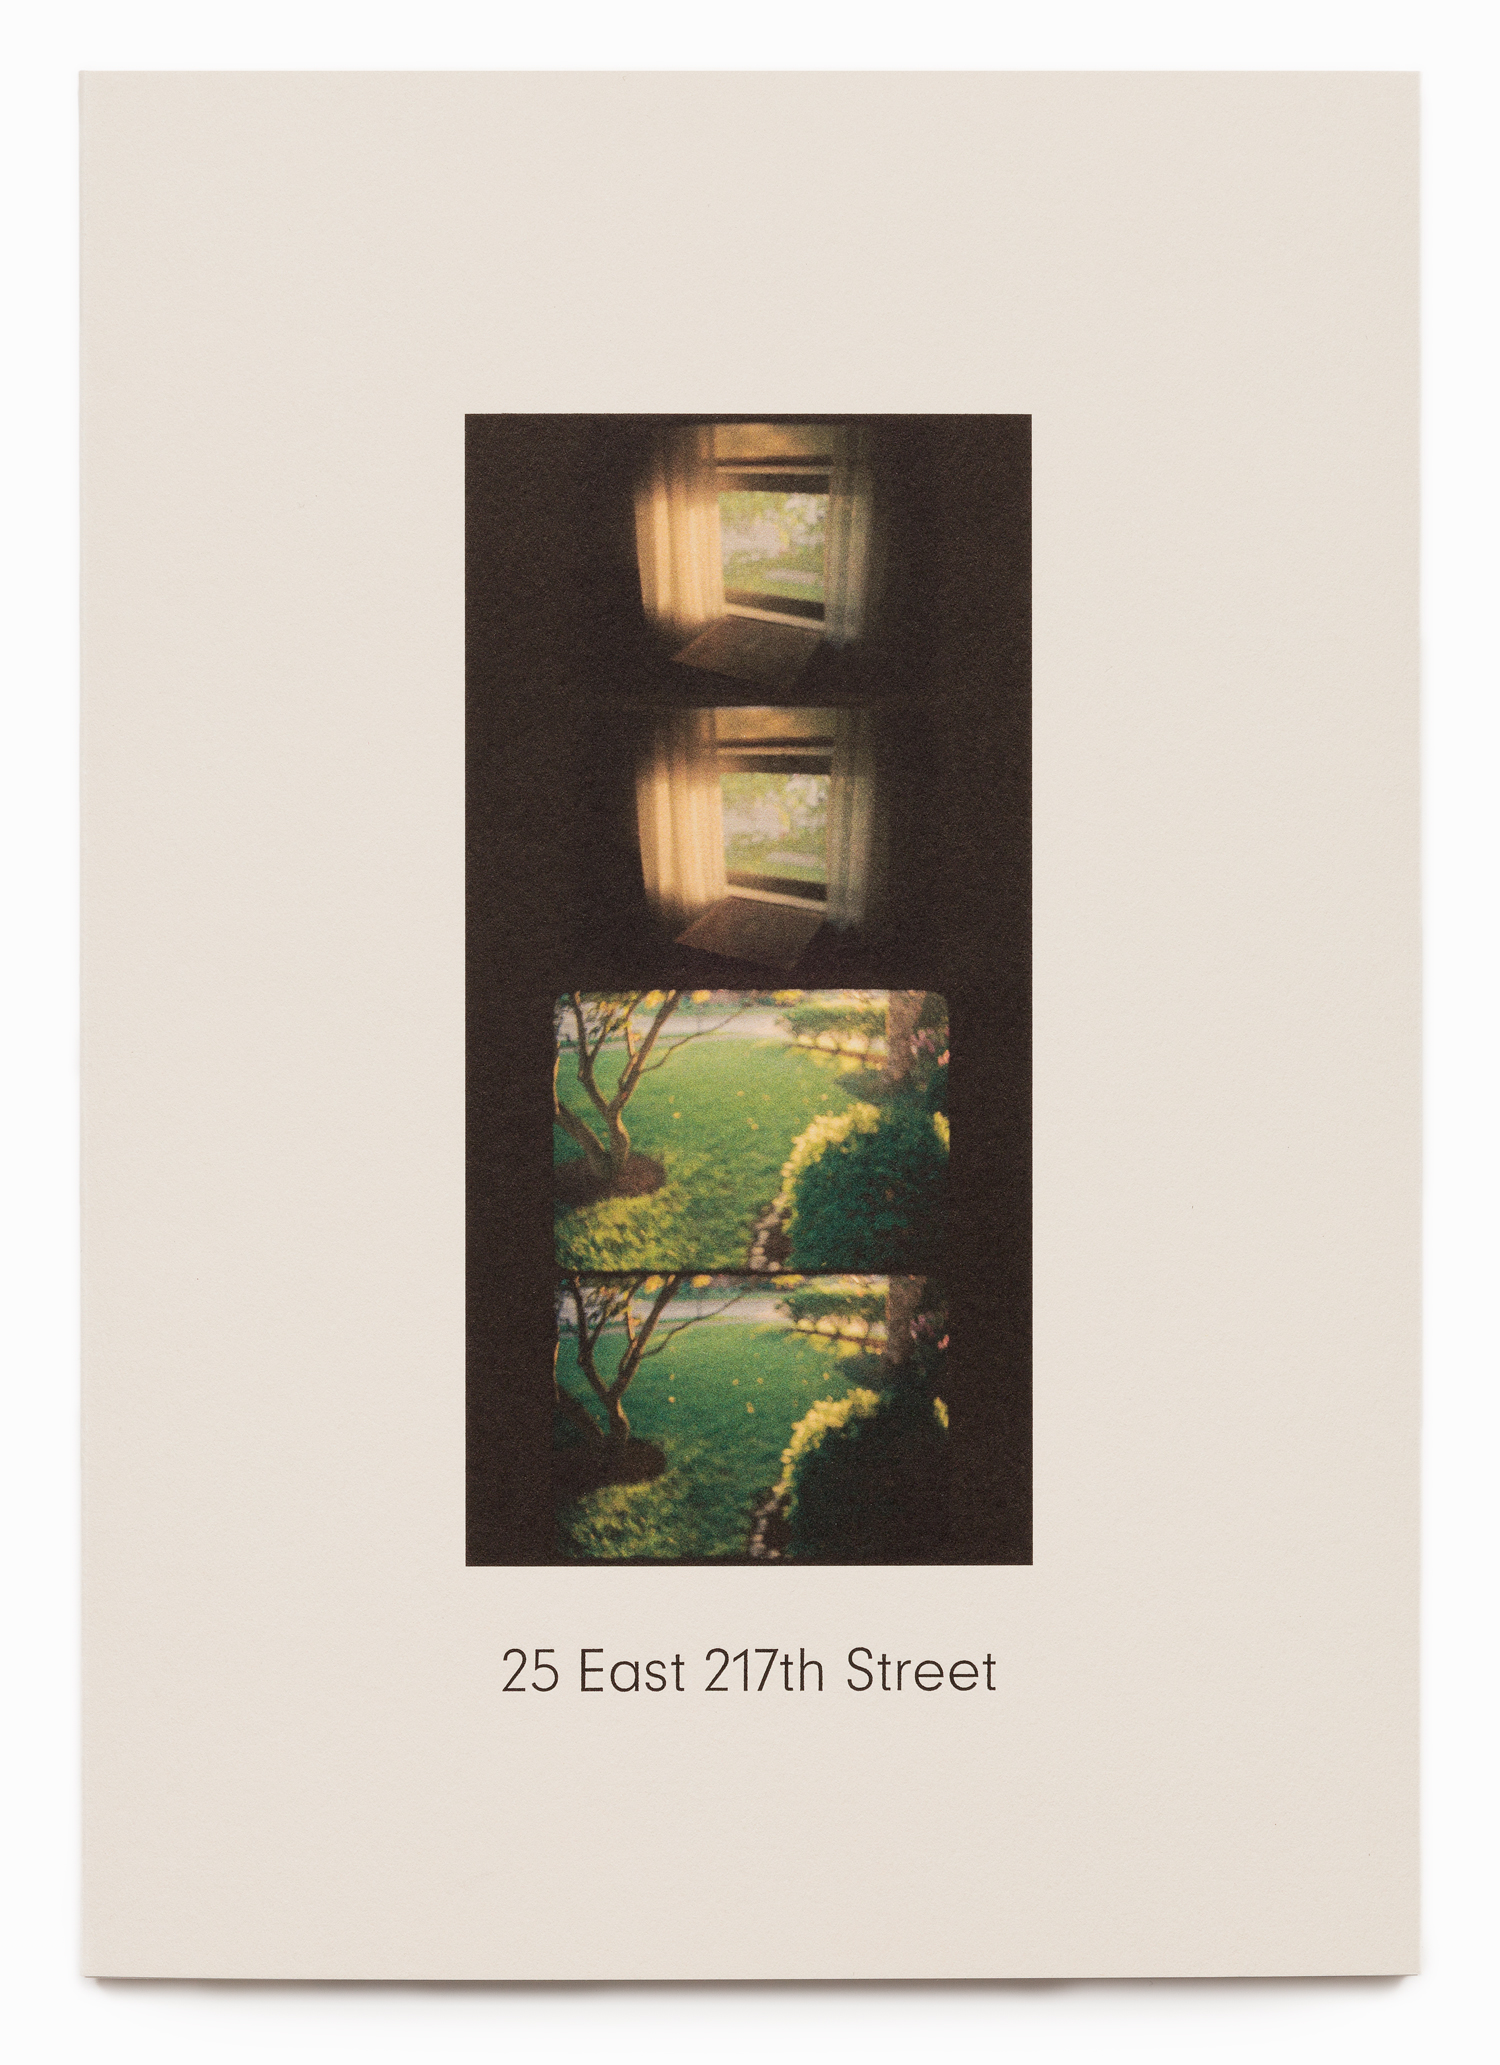 25-East-217th-Street-Jon-Beacham-Trade-Edition-Cover.jpg